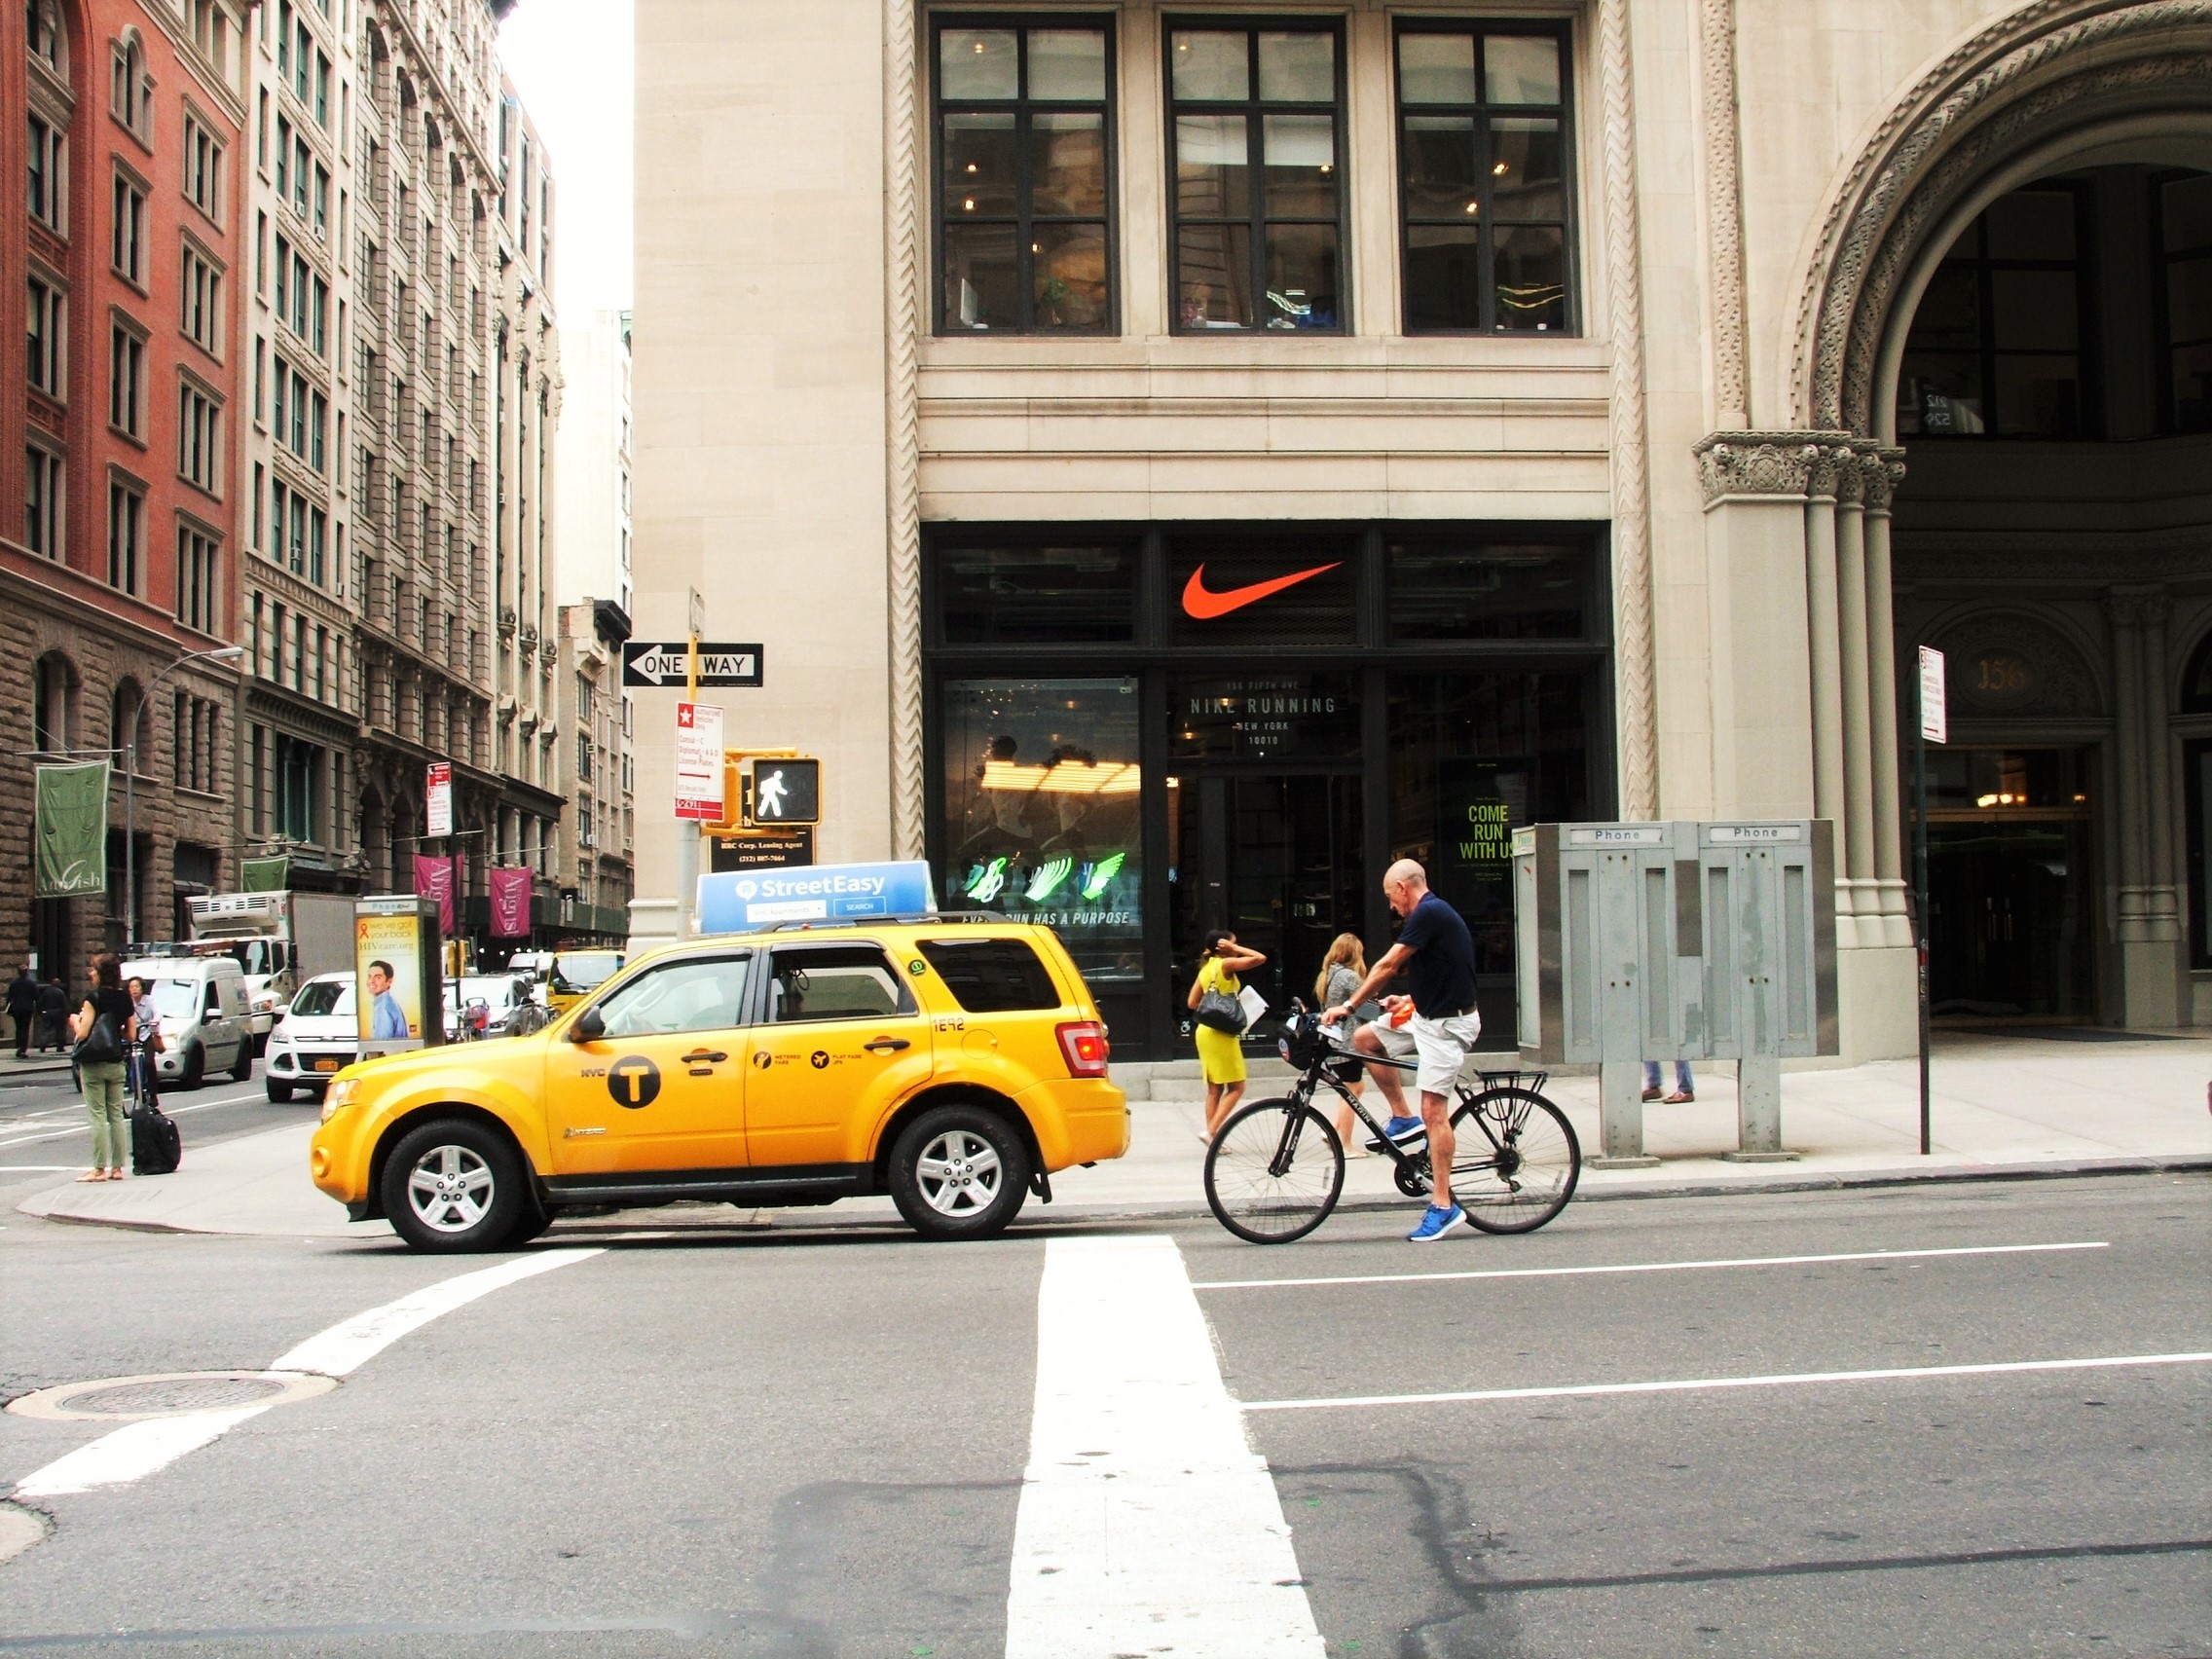 The Nike Store on 5th Avenue